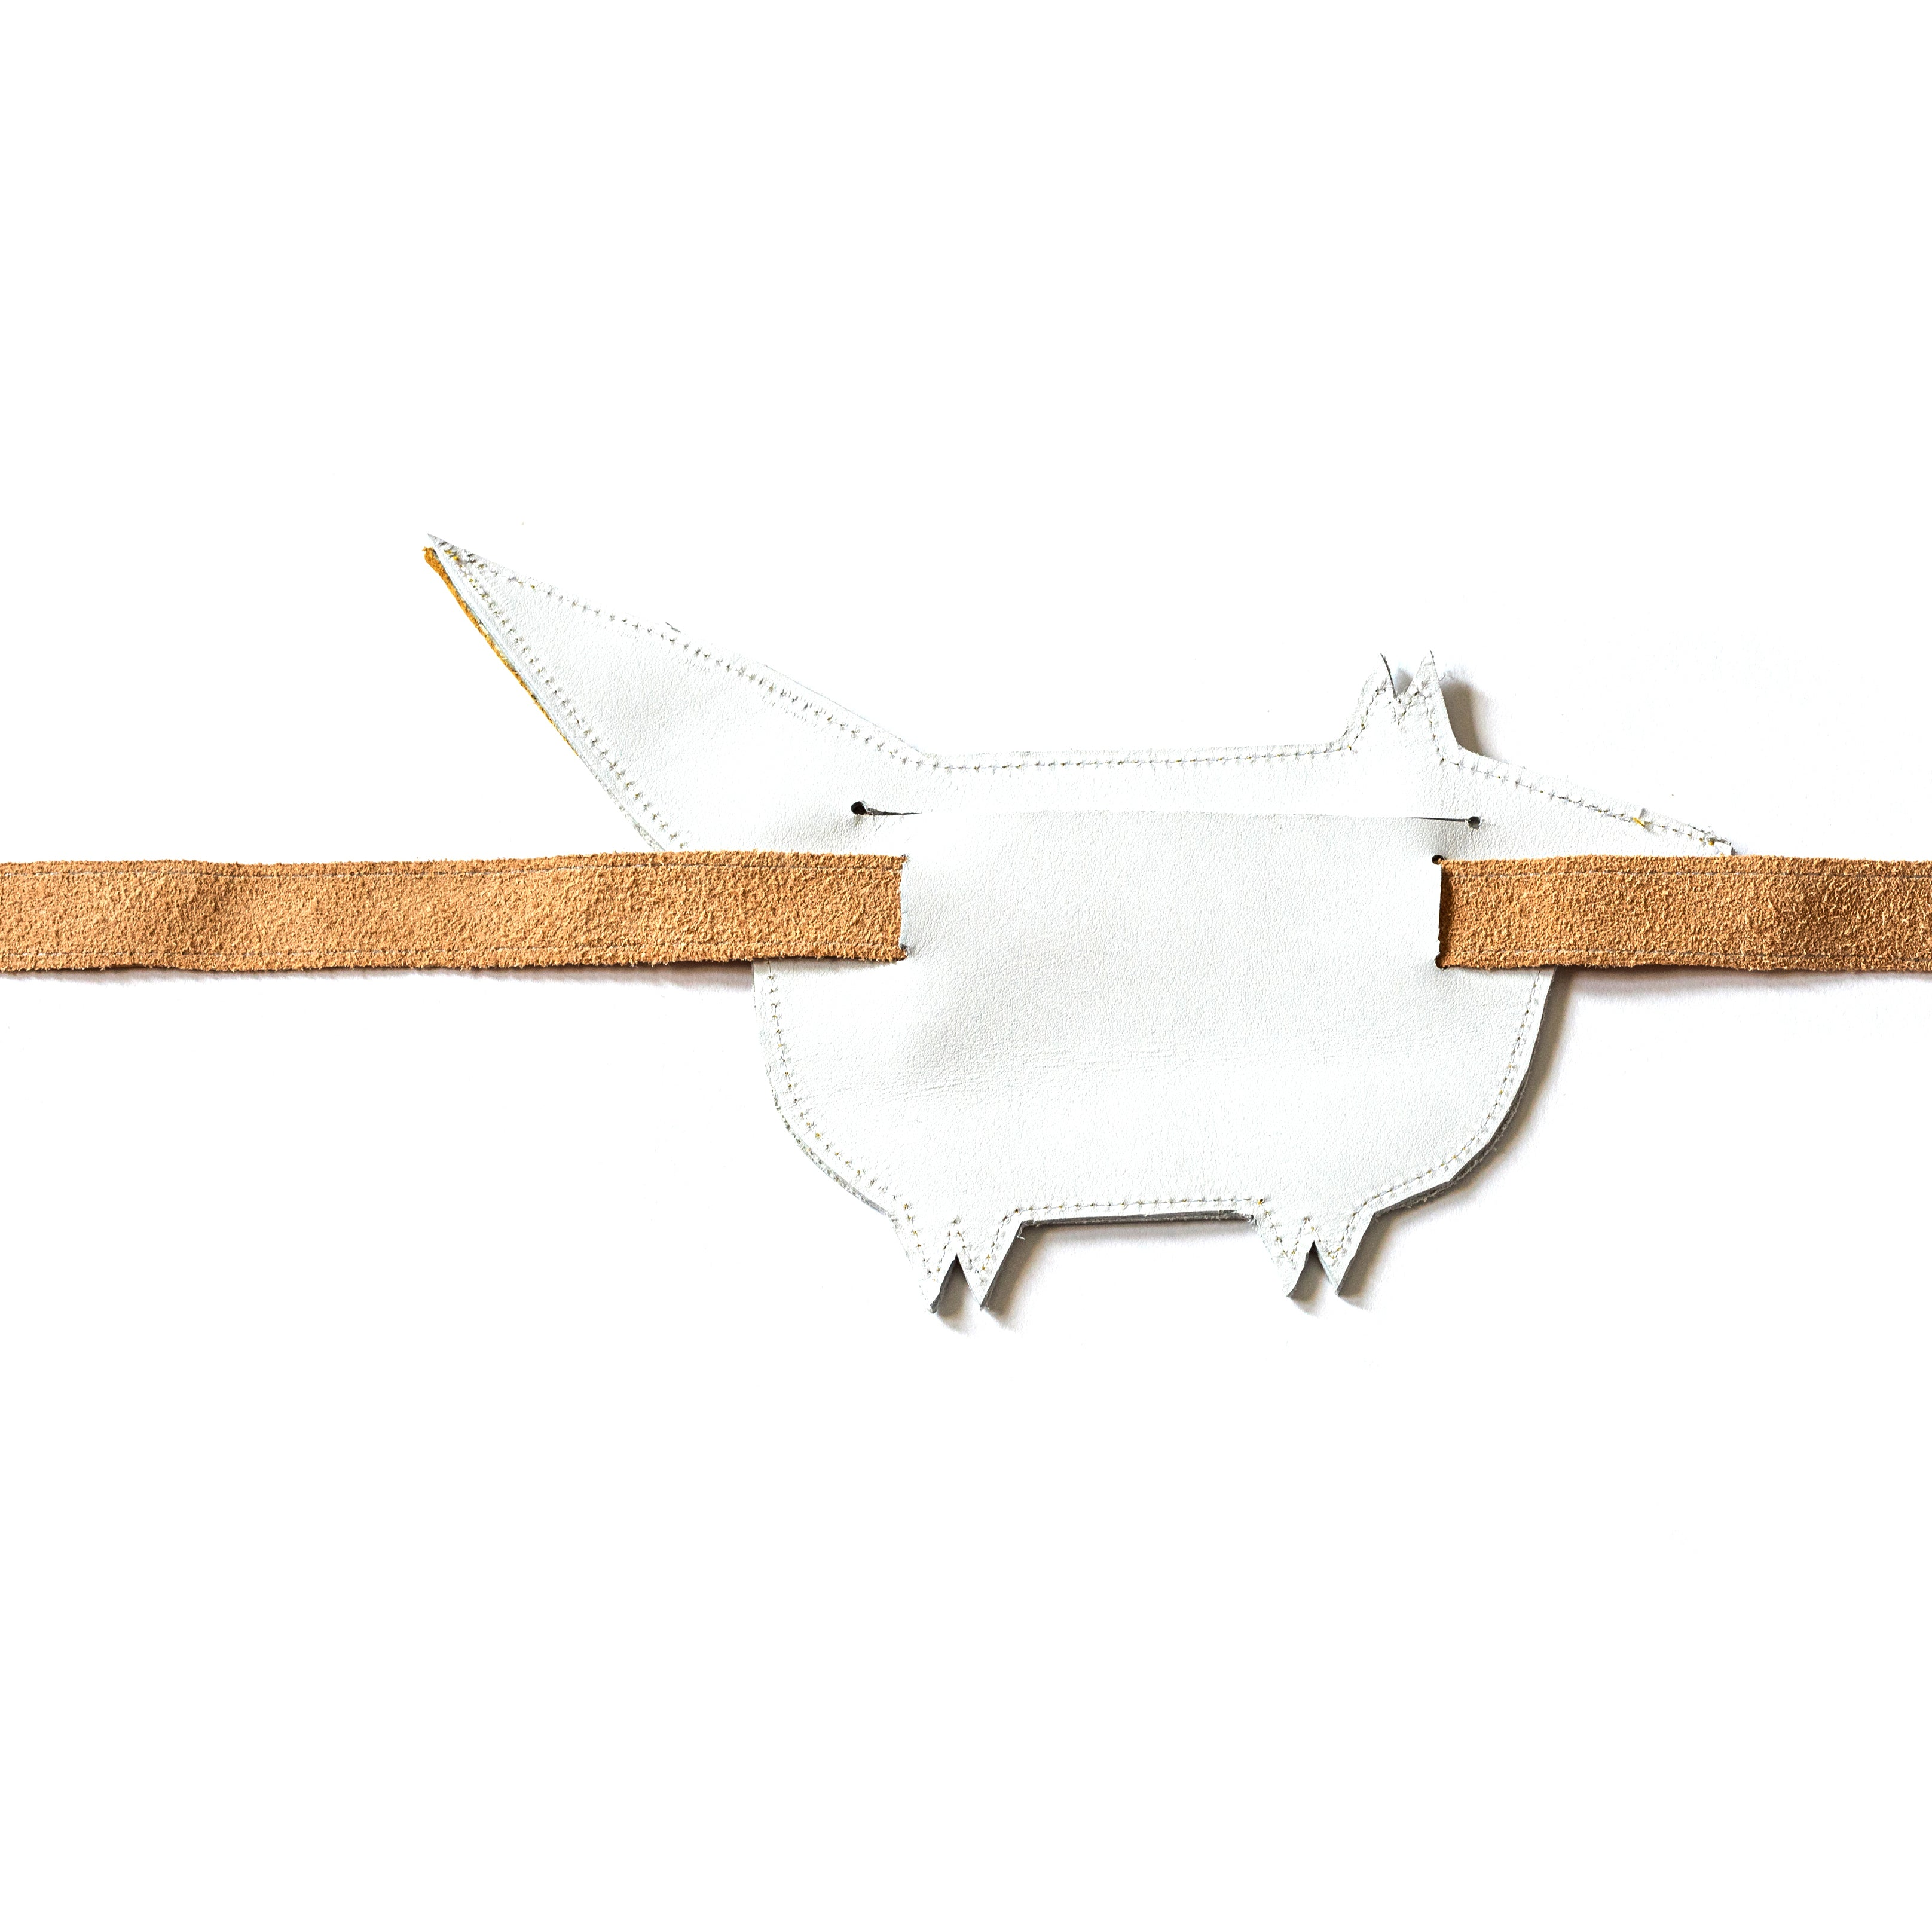 Eperfa leather belt bag fox, white, rear side